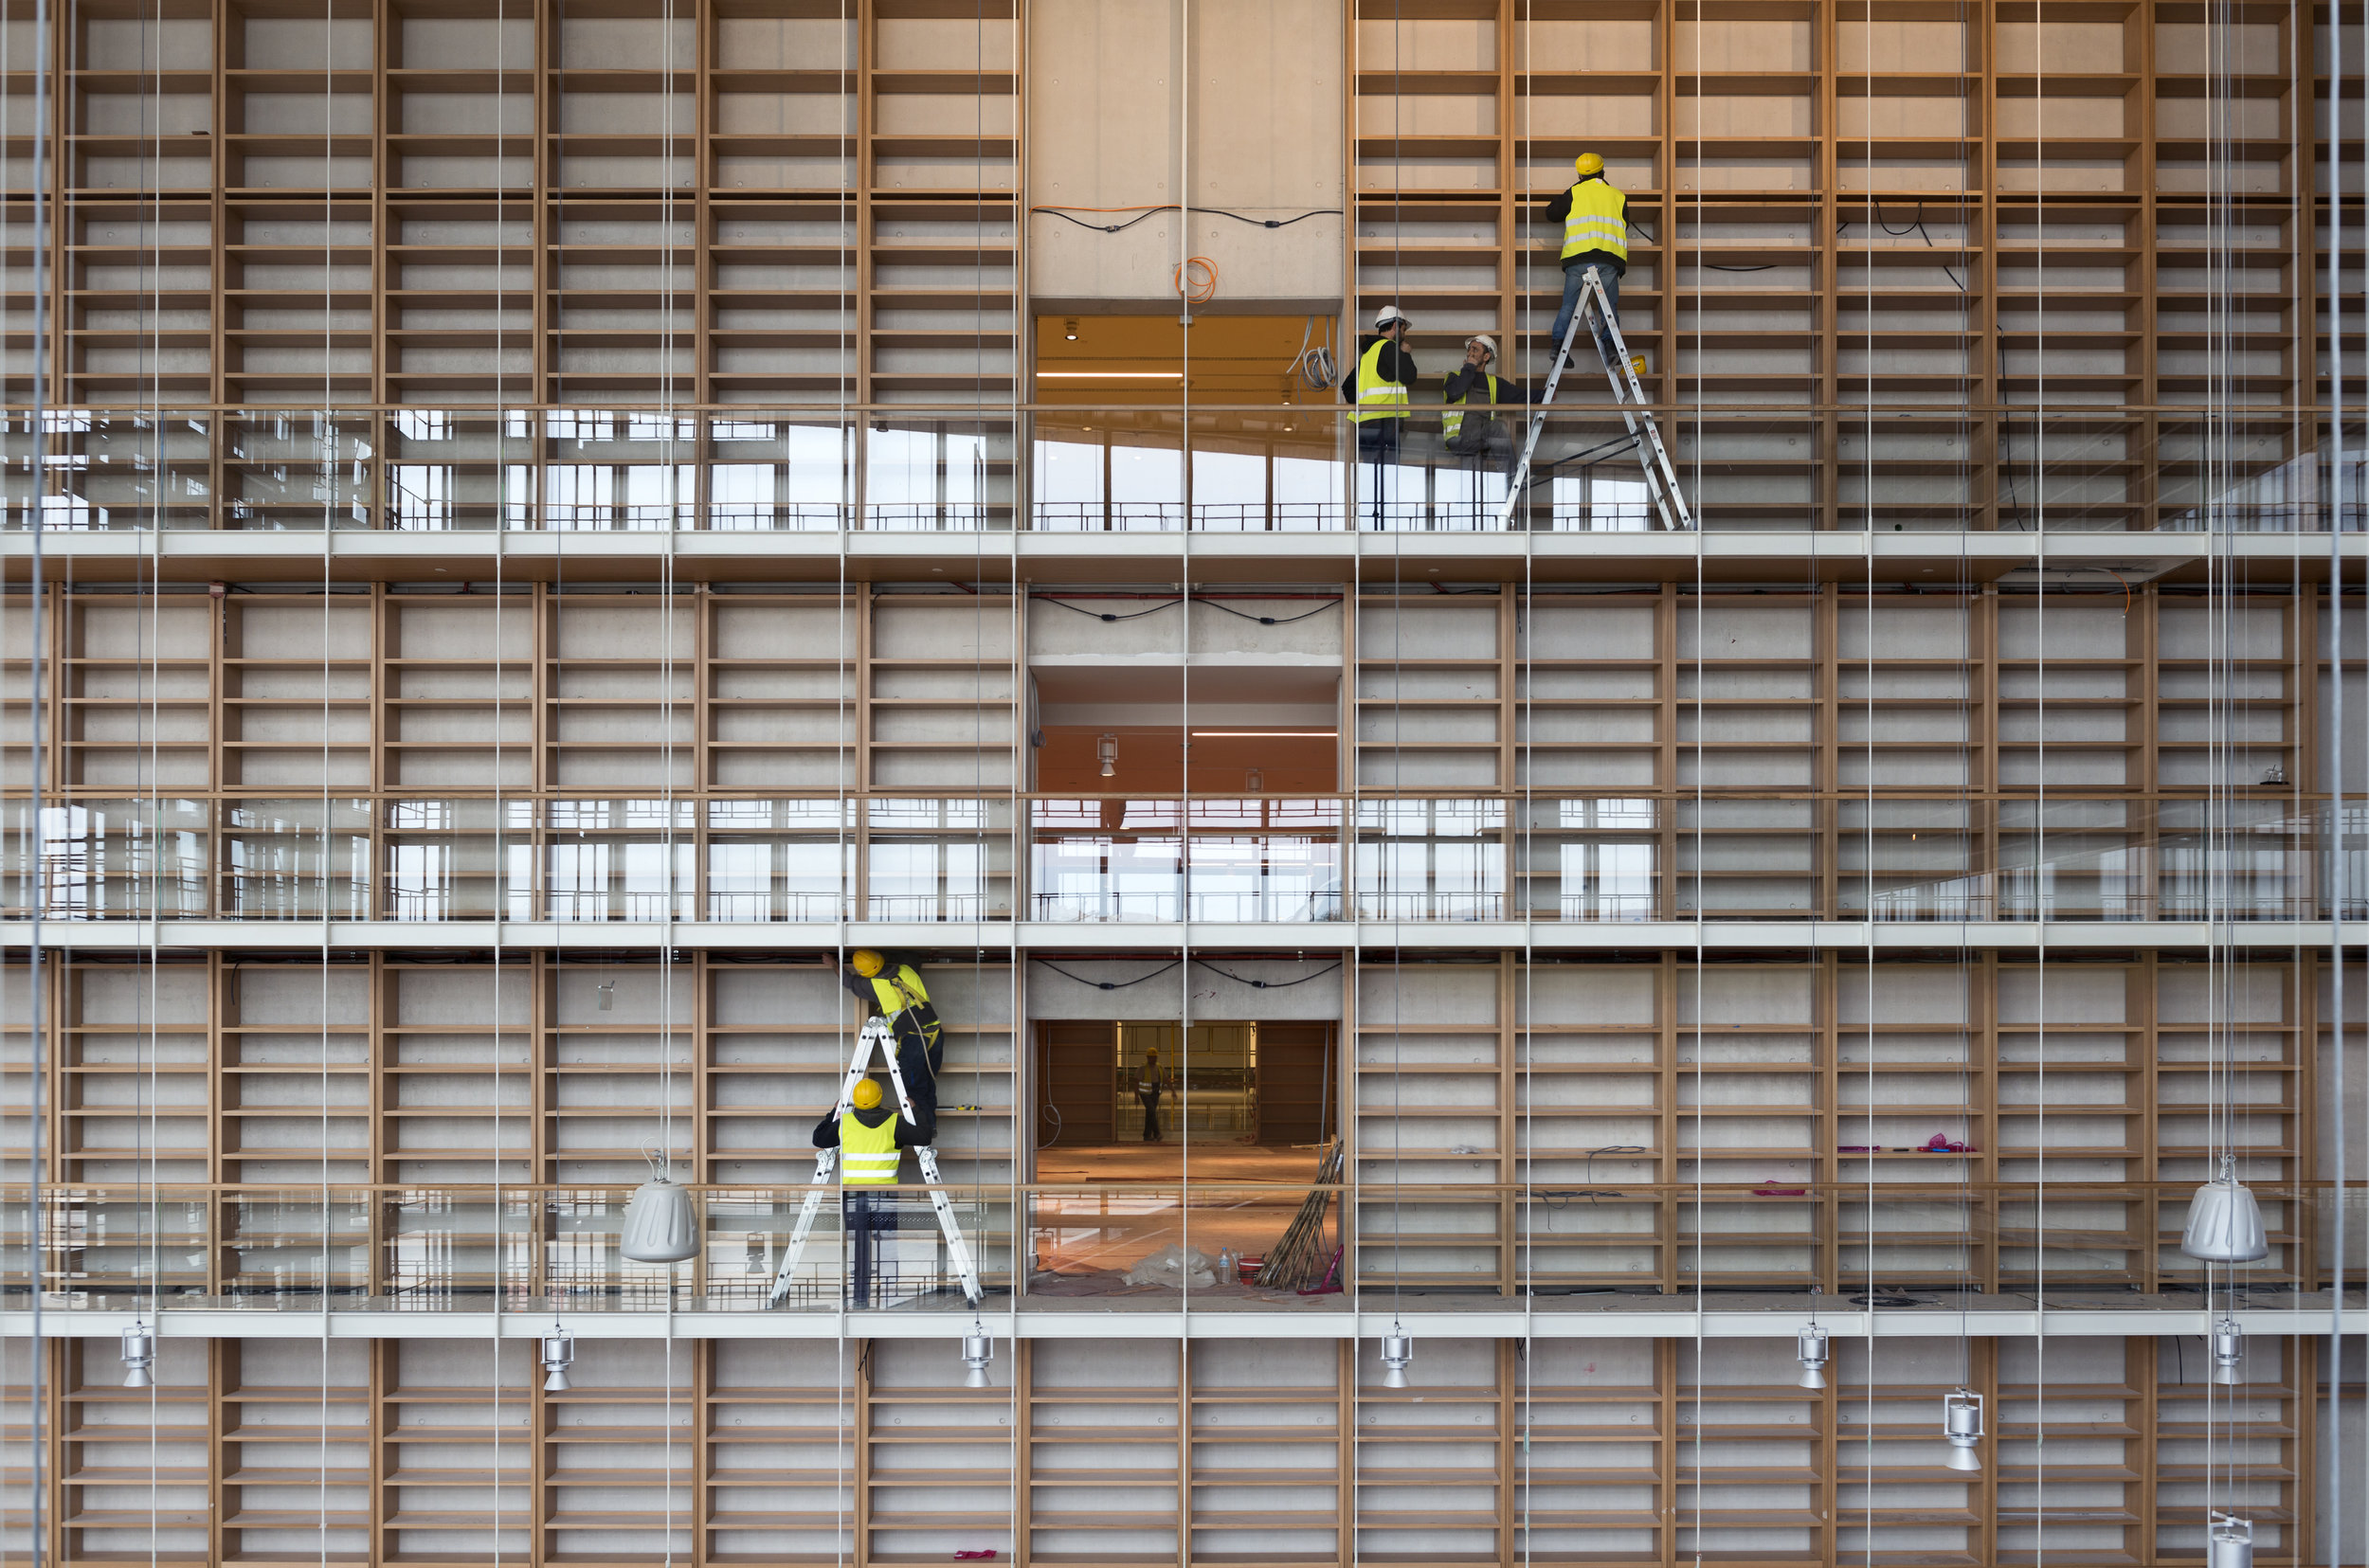 National Library of Greece, library shelves under construction. © Yiorgis Yerolymbos. Courtesy of the Stavros Niarchos Foundation.